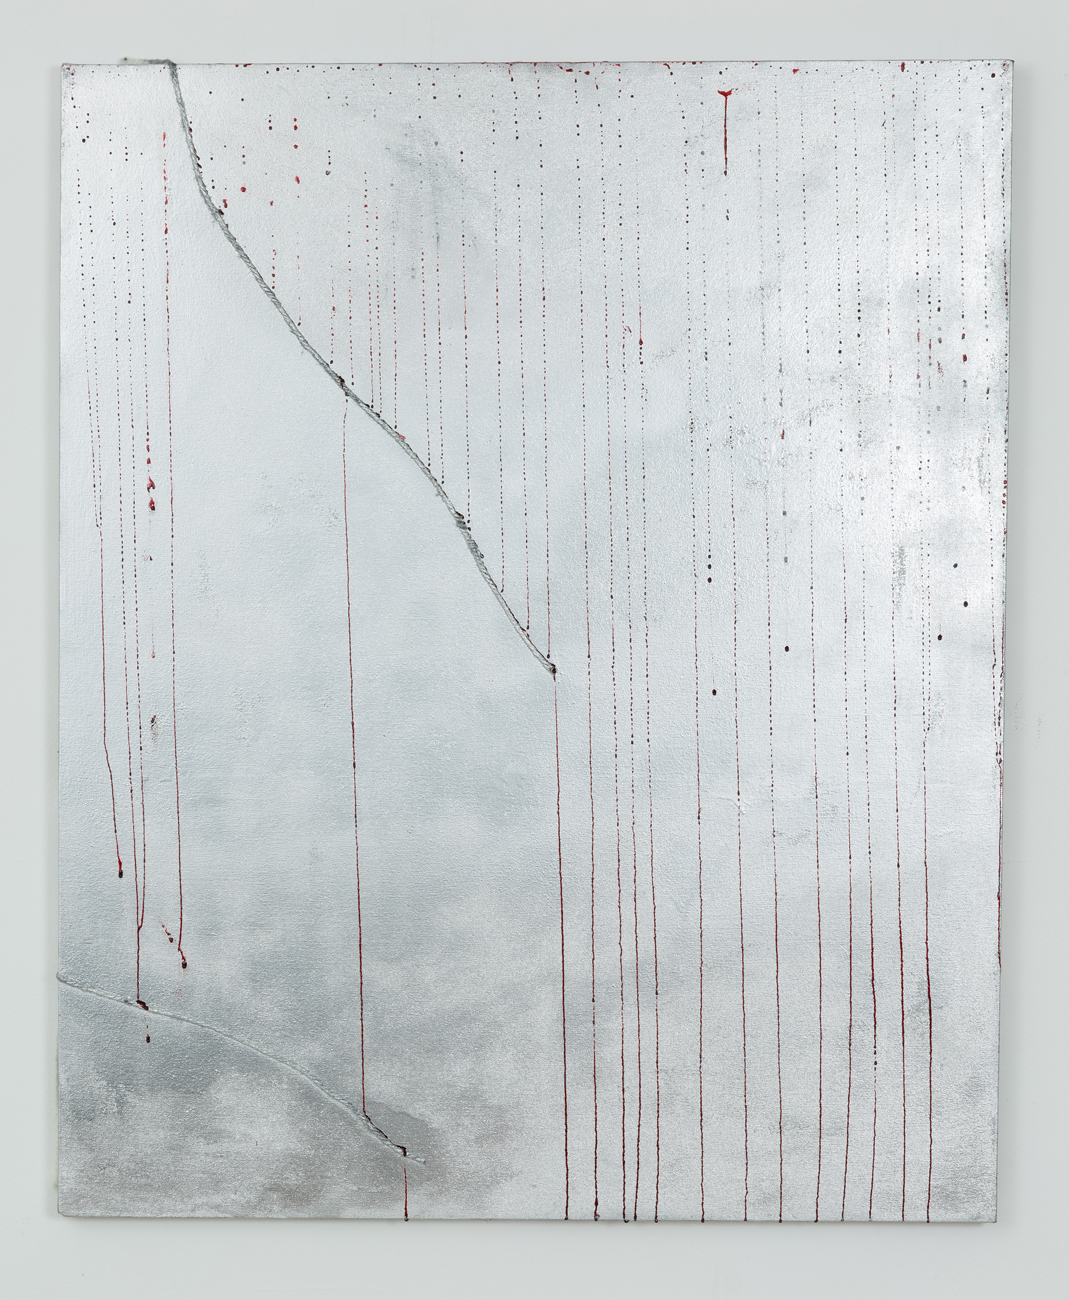 Mathieu Malouf - Untitled, 2014, spray paint, fiber, and fake blood on canvas, 40 x 32 inches